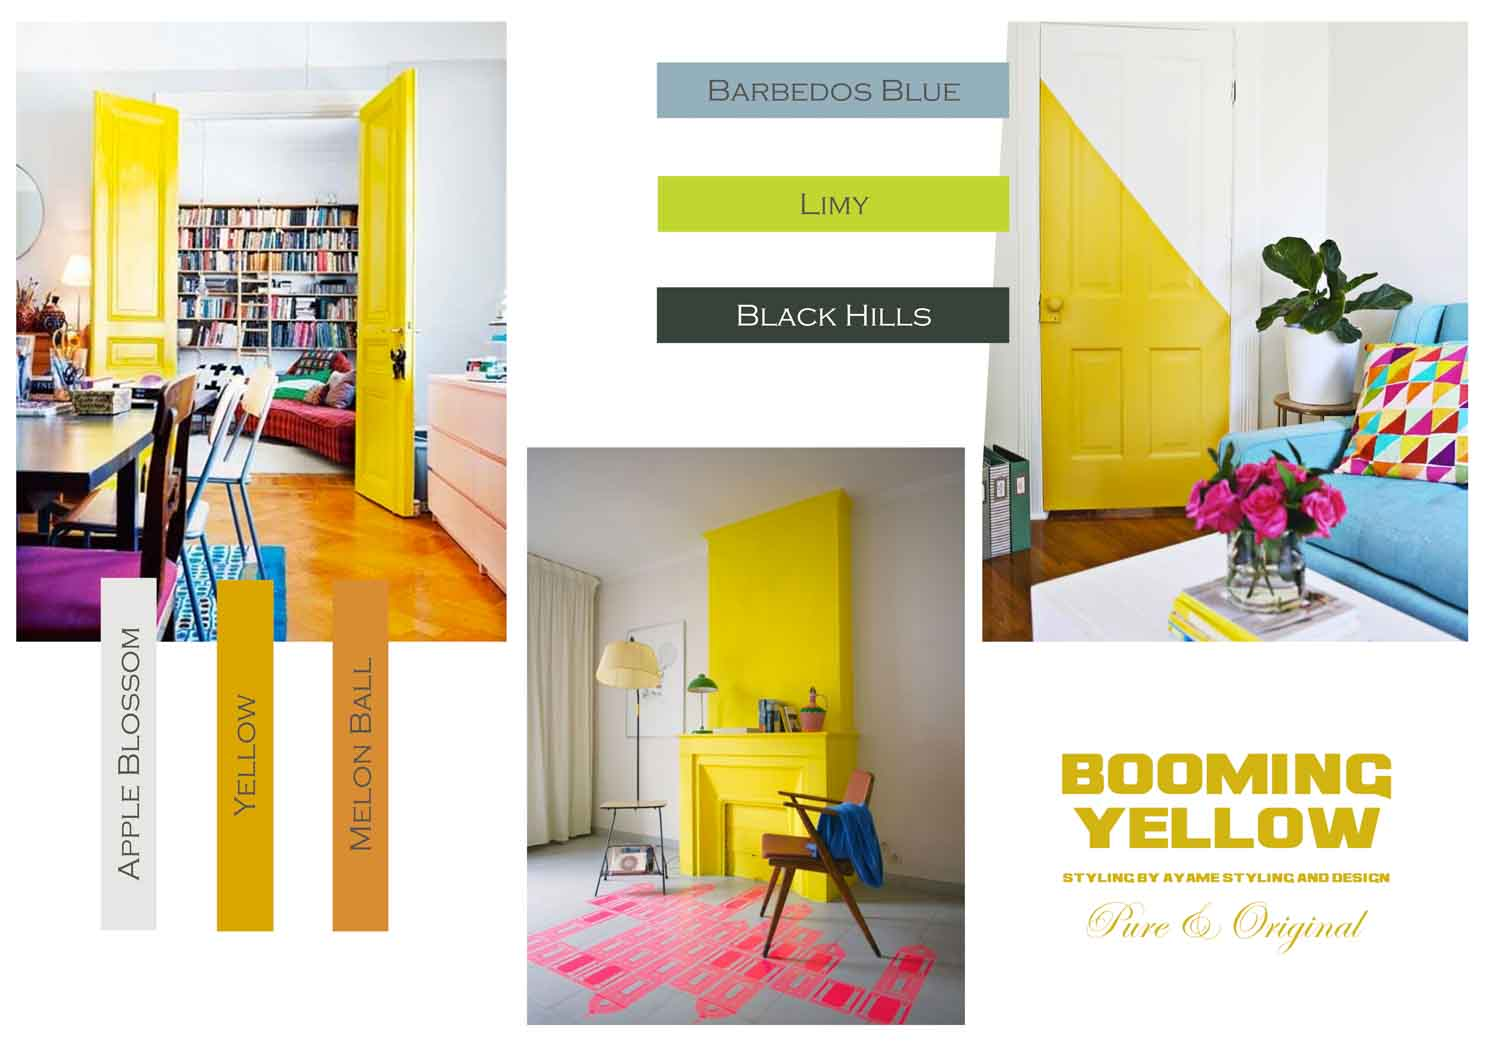 Booming yellow moodboards with yellows, greens, and blues